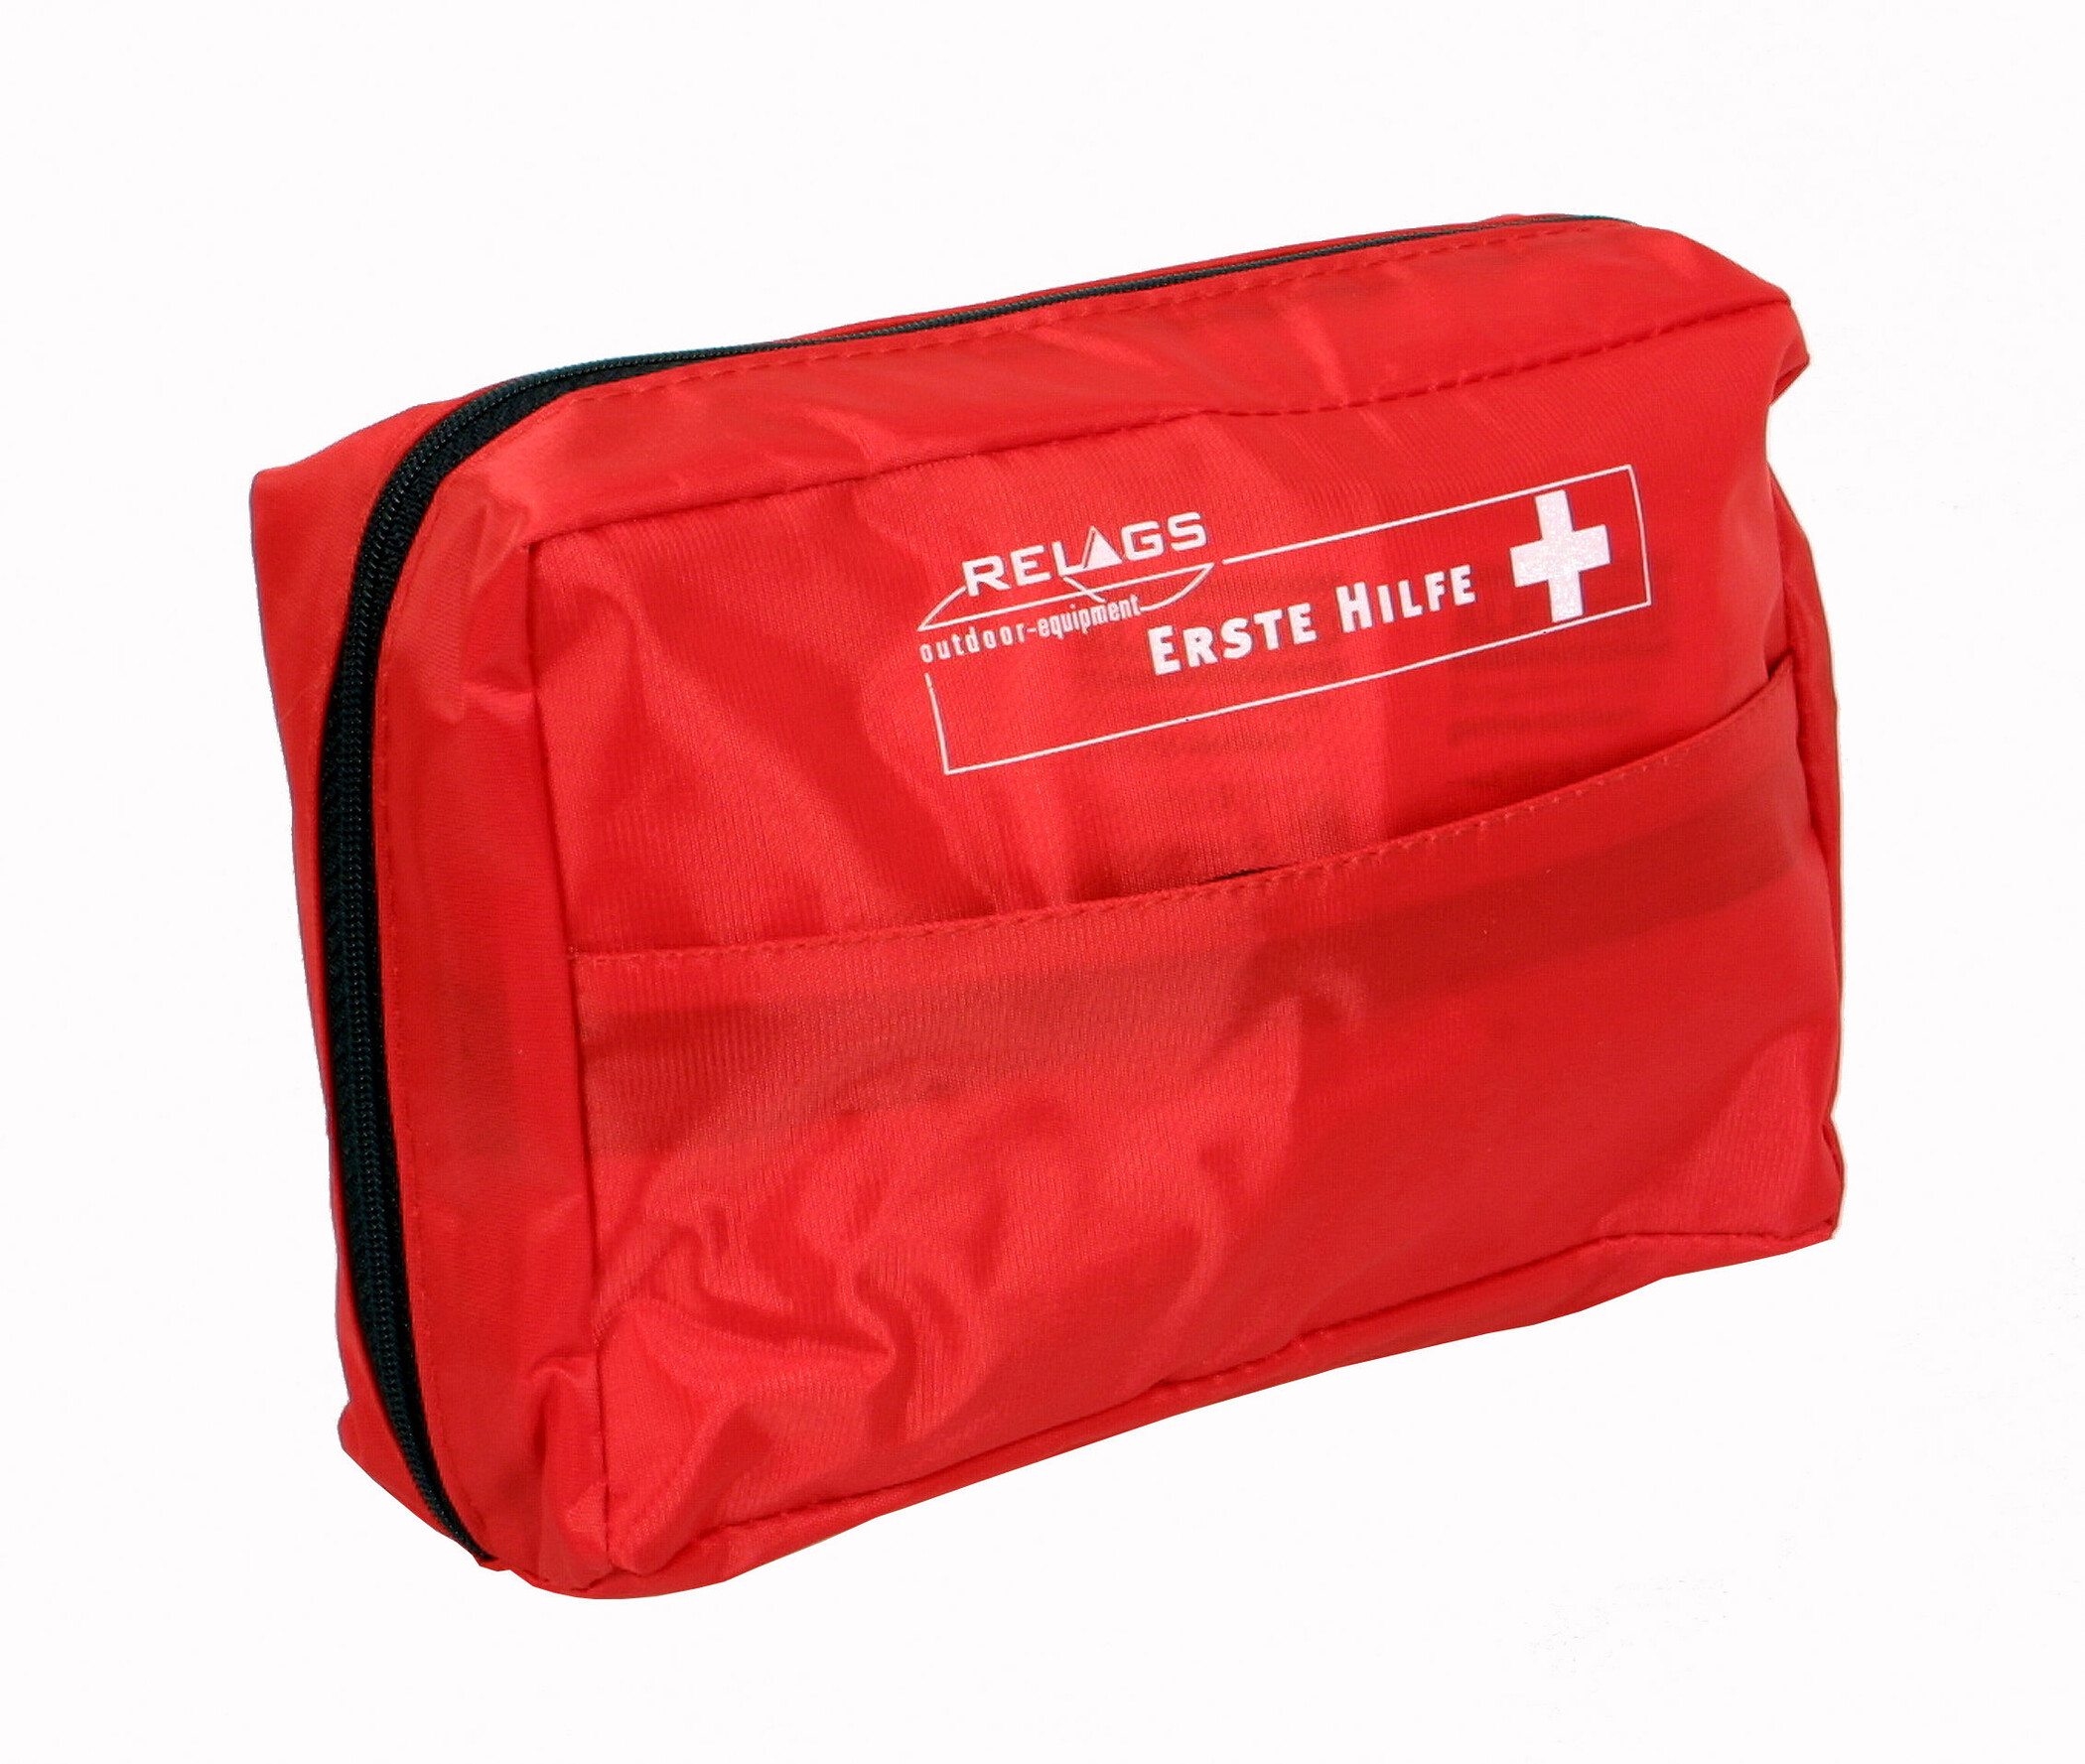 Relags First Aid Kit Around the World (2019) | misc_clothes